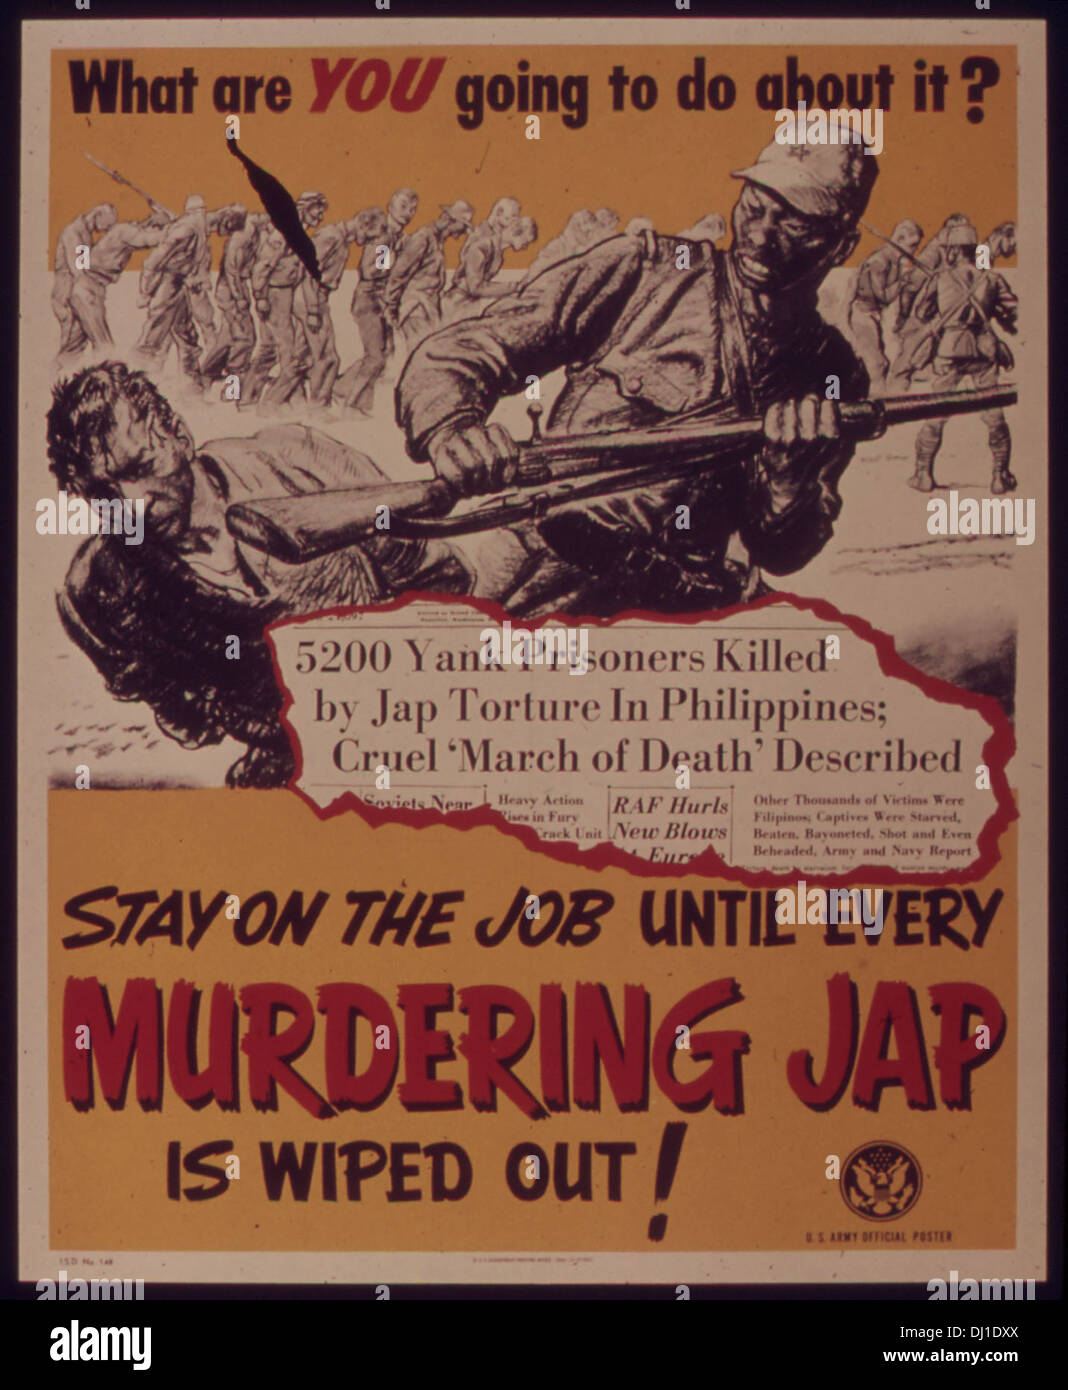 STAY ON THE JOB UNTIL EVERY MURDERING JAP IS WIPED OUT5E 483 - Stock Image